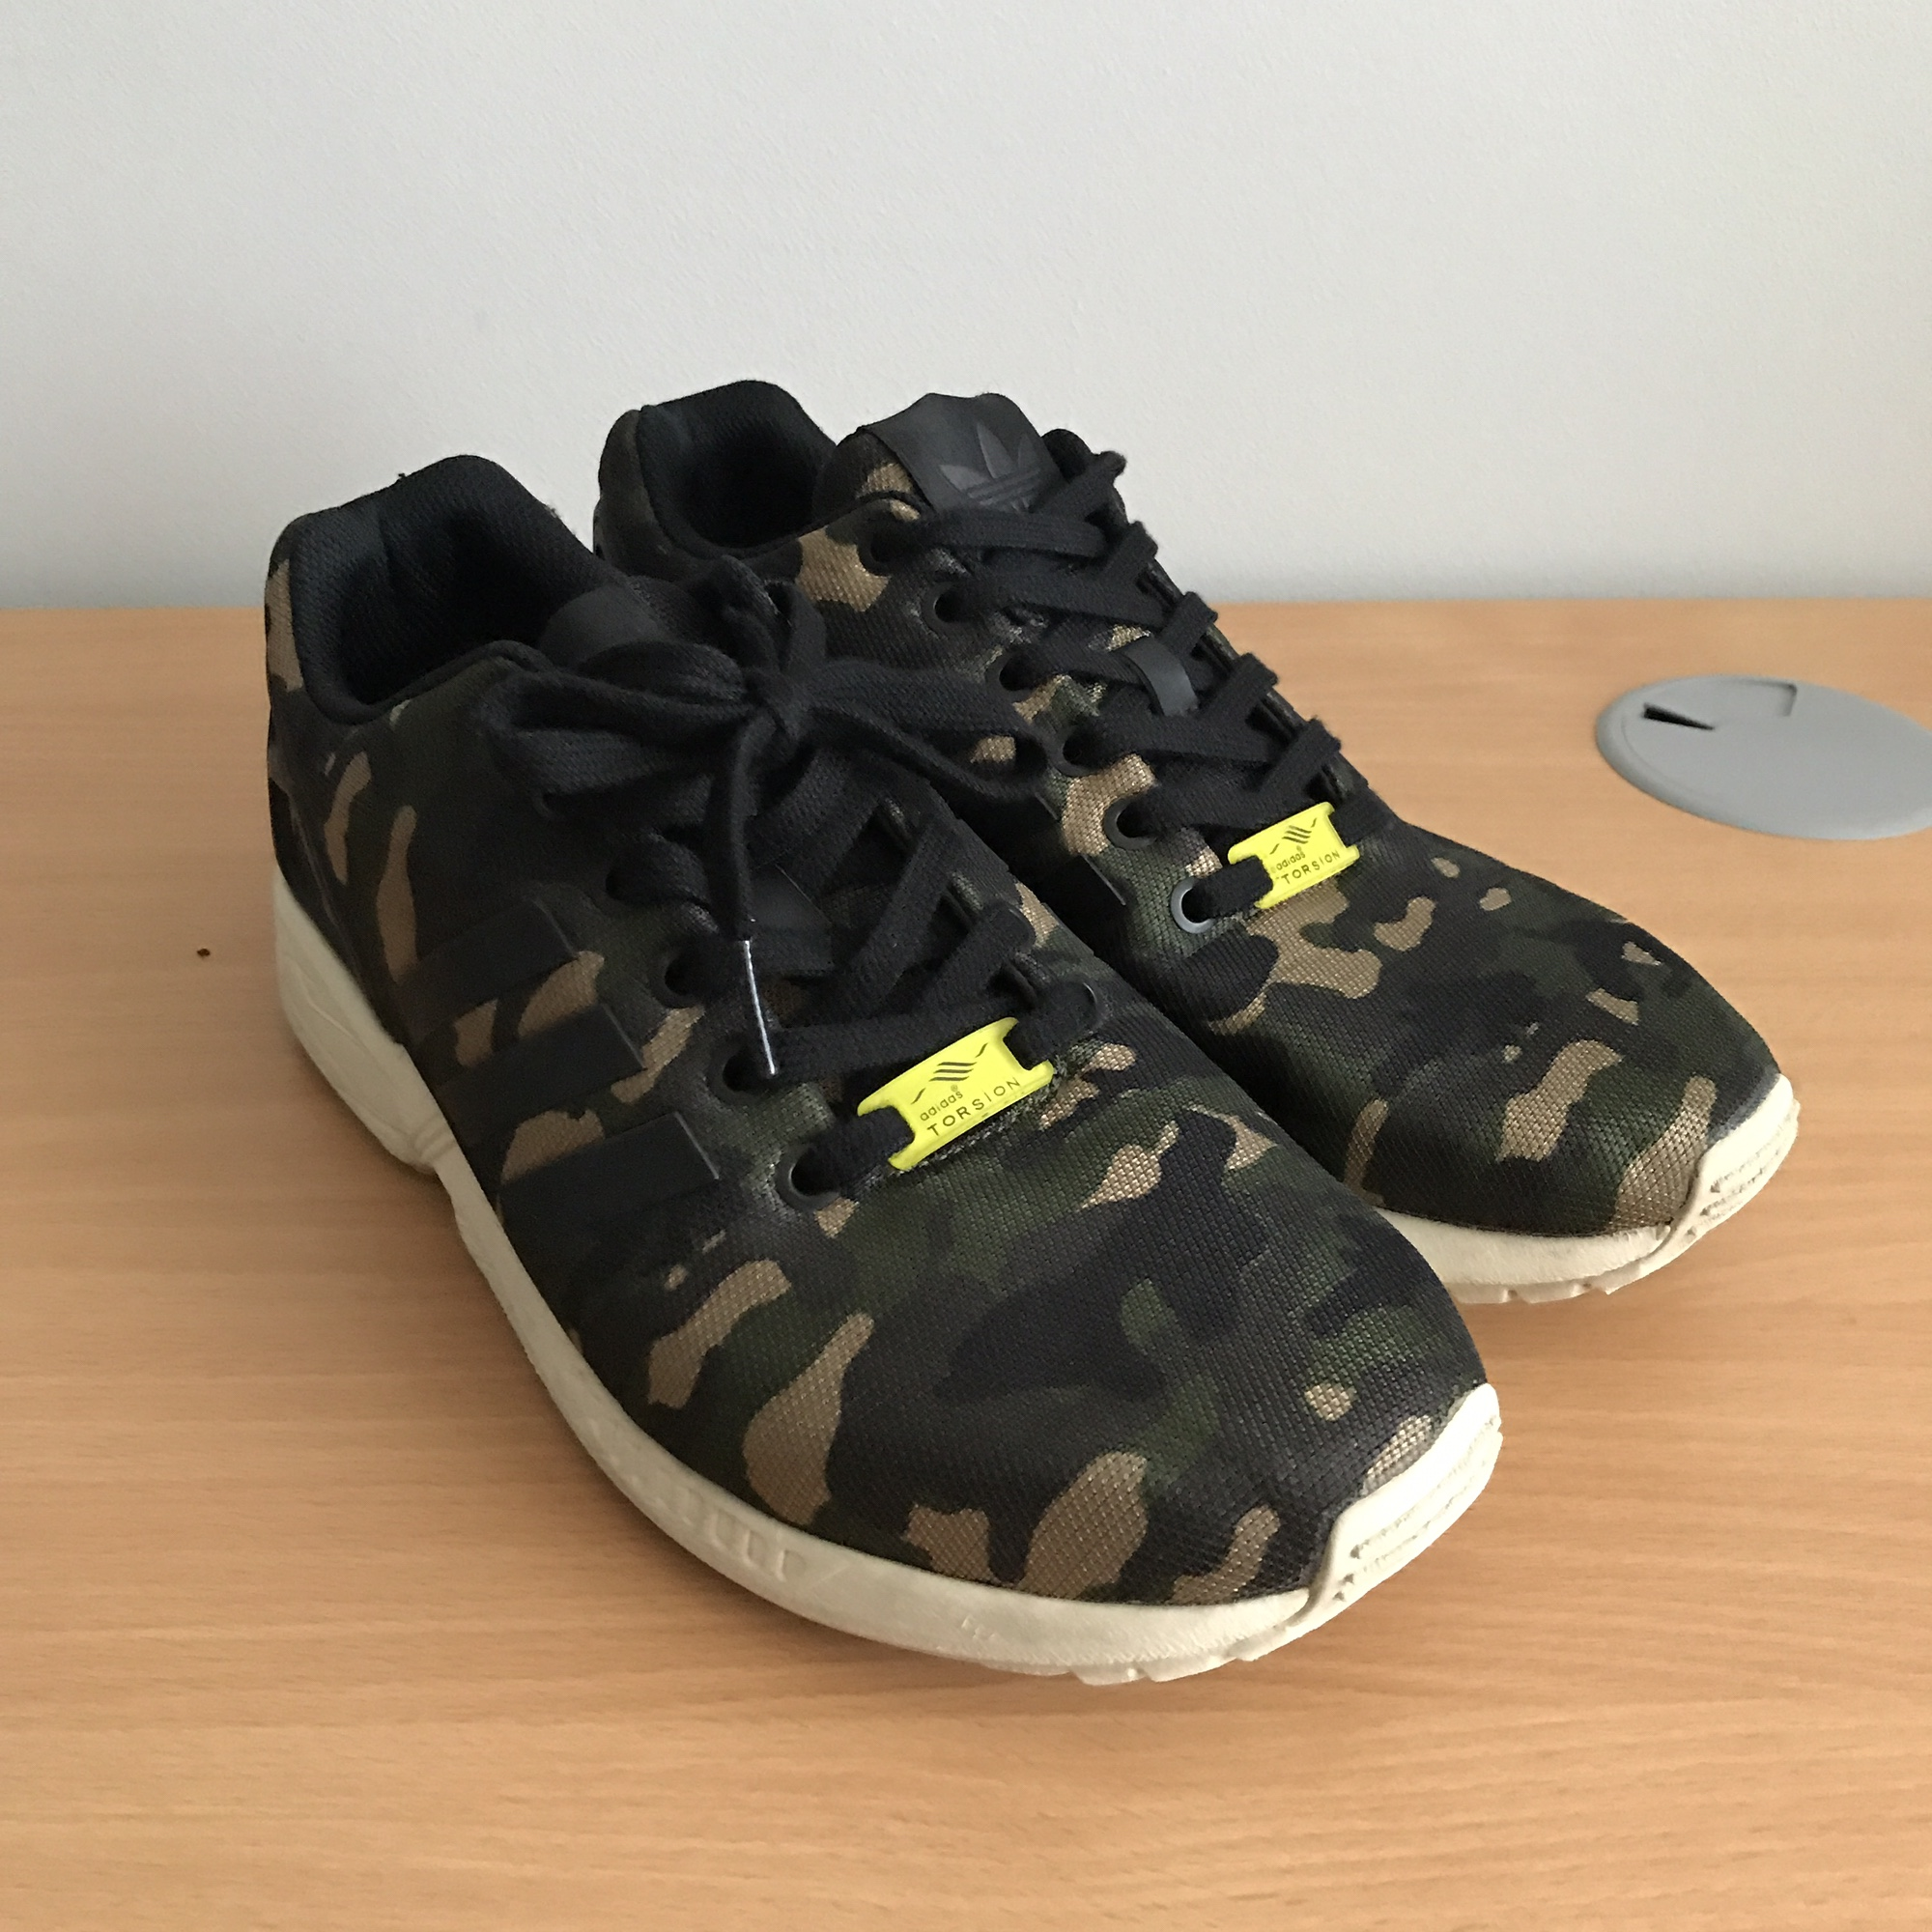 purchase cheap a2dbc 09967 Adidas zx flux camo, generally good condition over... - Depop